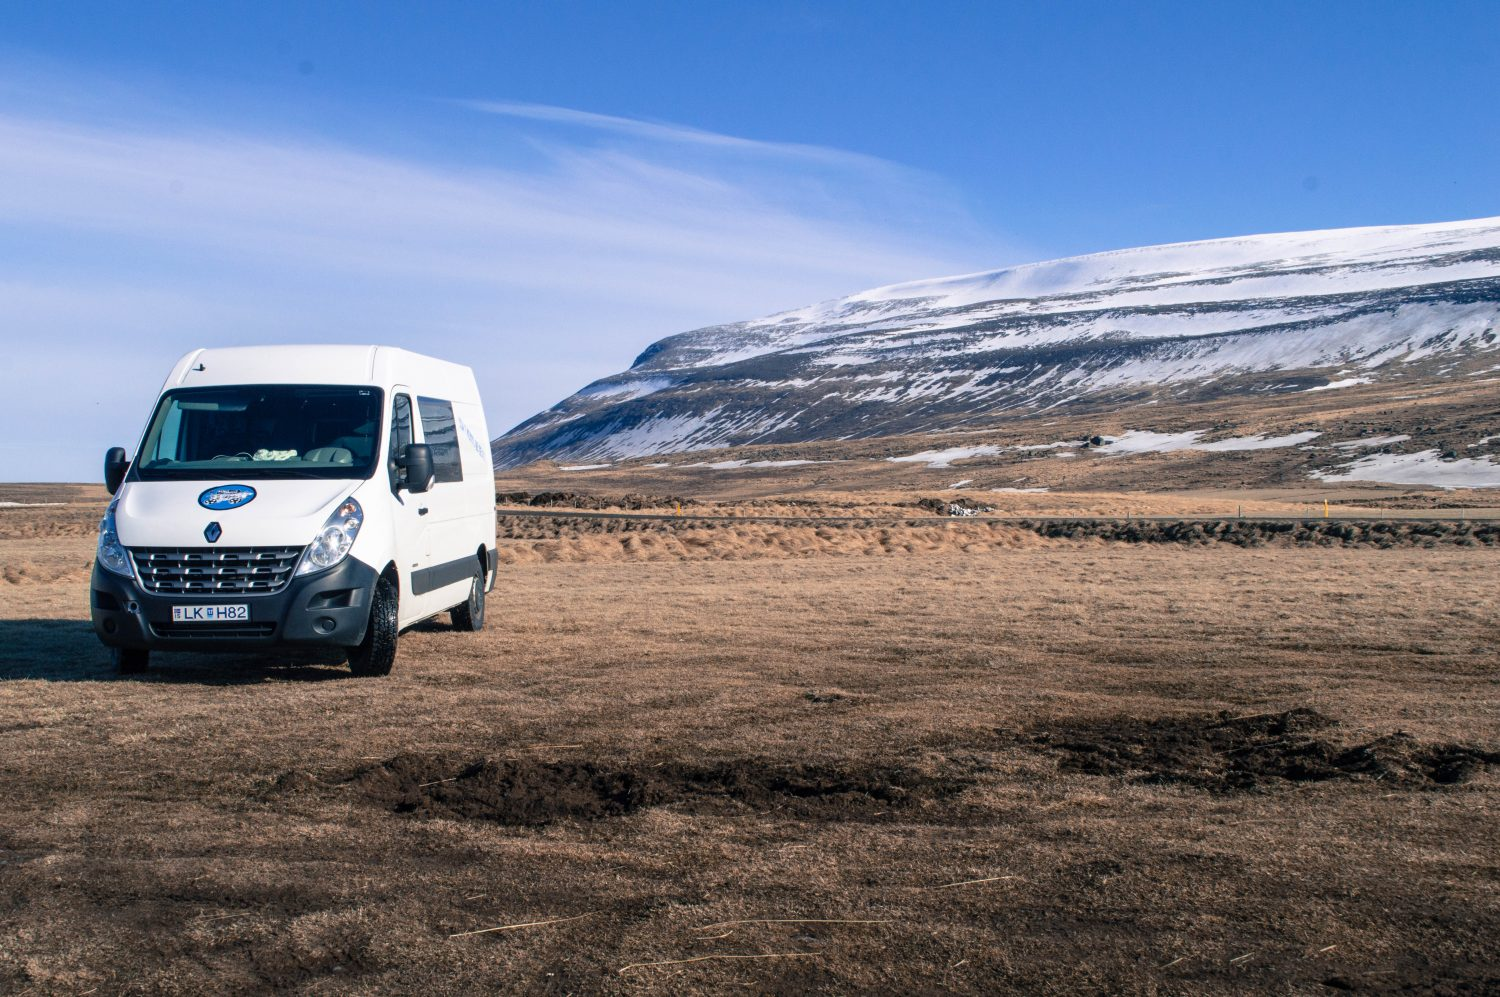 Kukucampers Van in Iceland